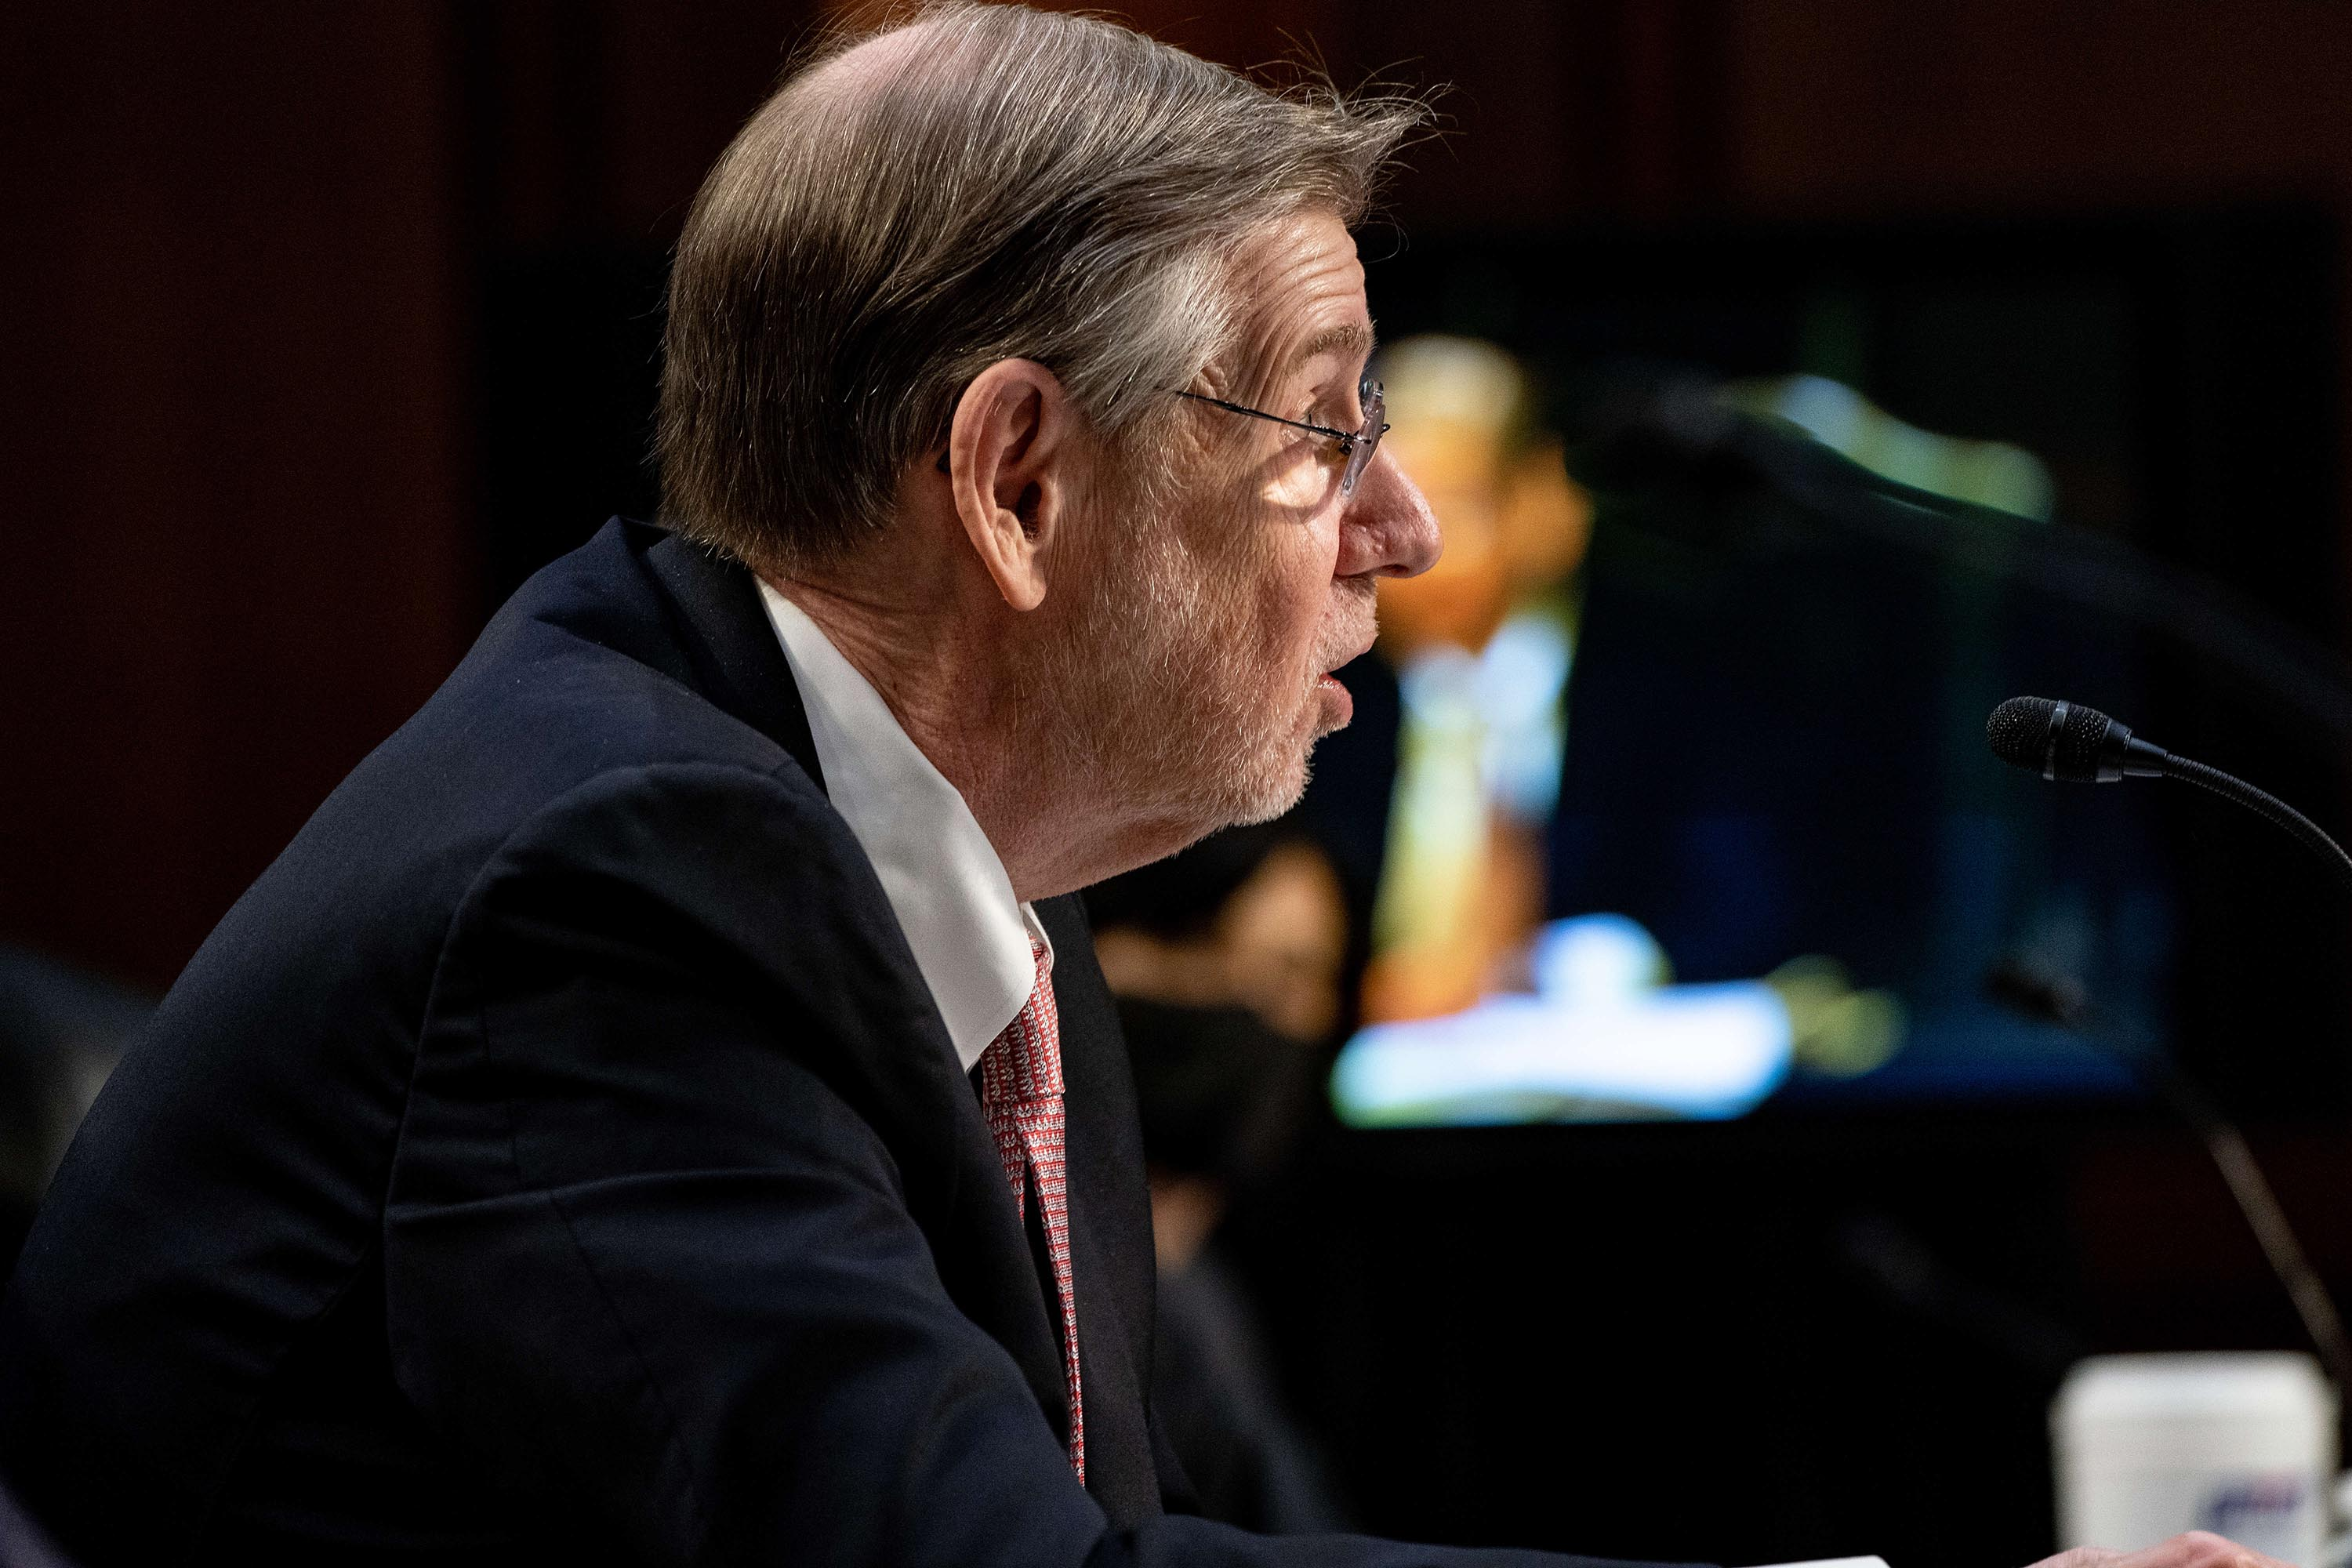 Dr. David Kessler, Chief Science Officer of the White House COVID-19 Response Team speaks during a hearing on the Covid-19 response, on Capitol Hill on March 18, 2021.